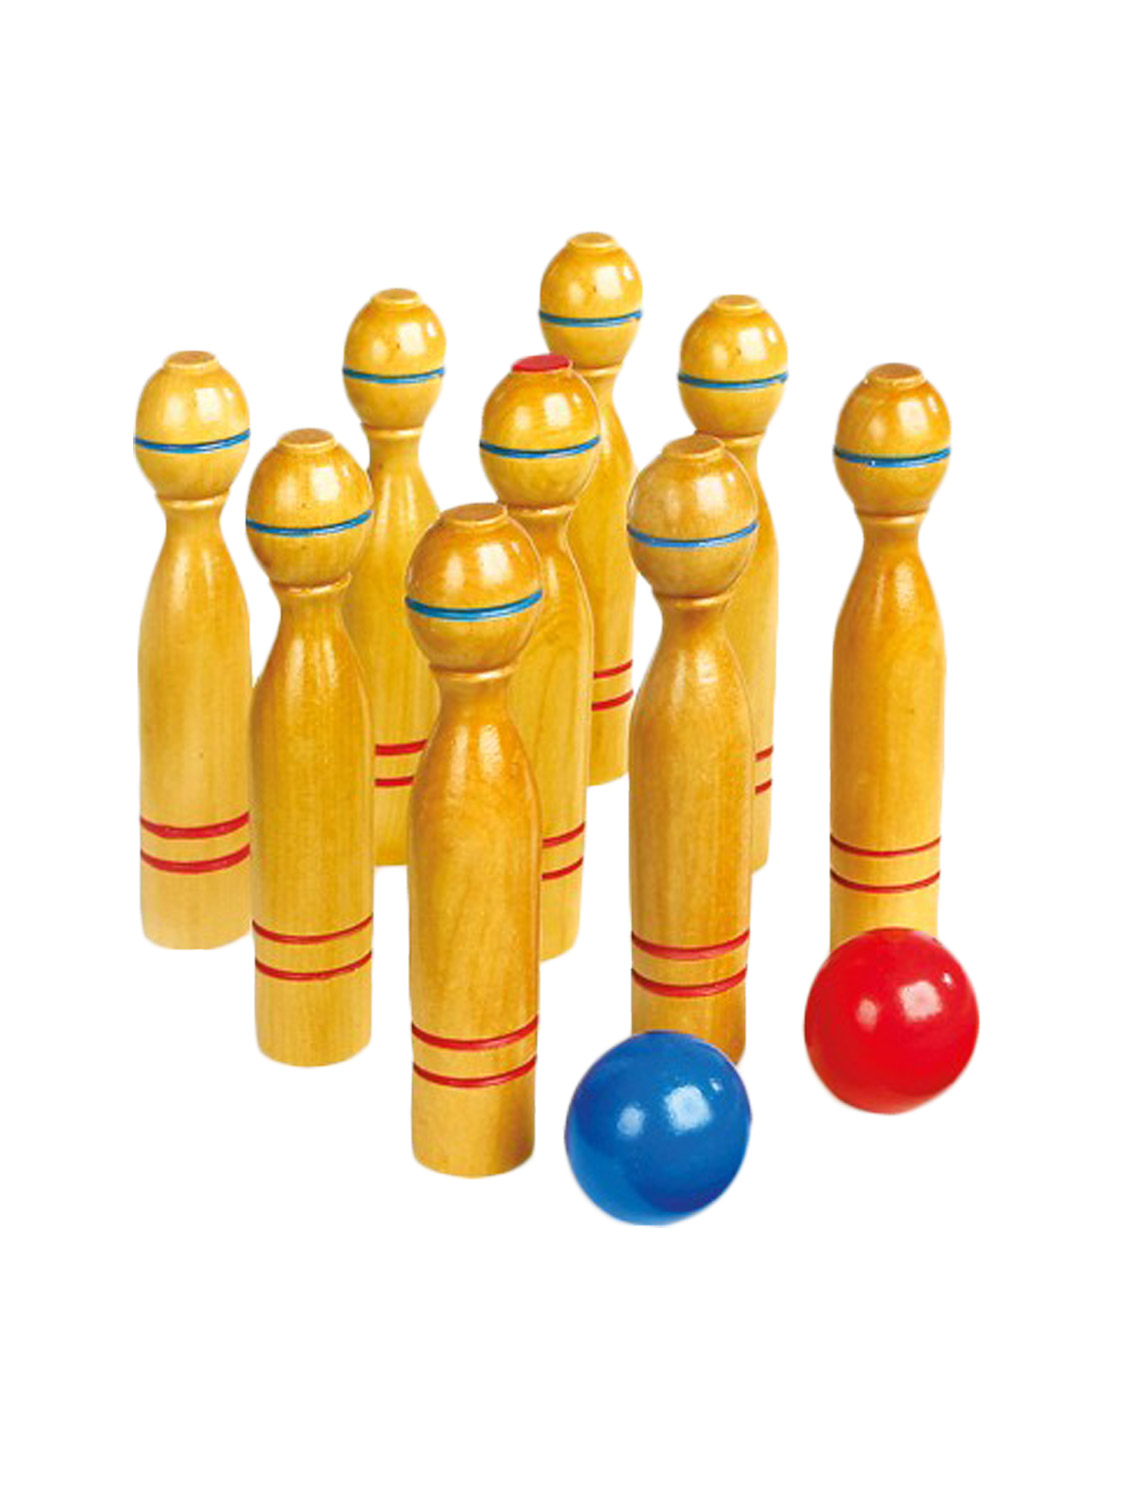 Toys For Games : Traditional quality wooden garden games outdoor lawn party